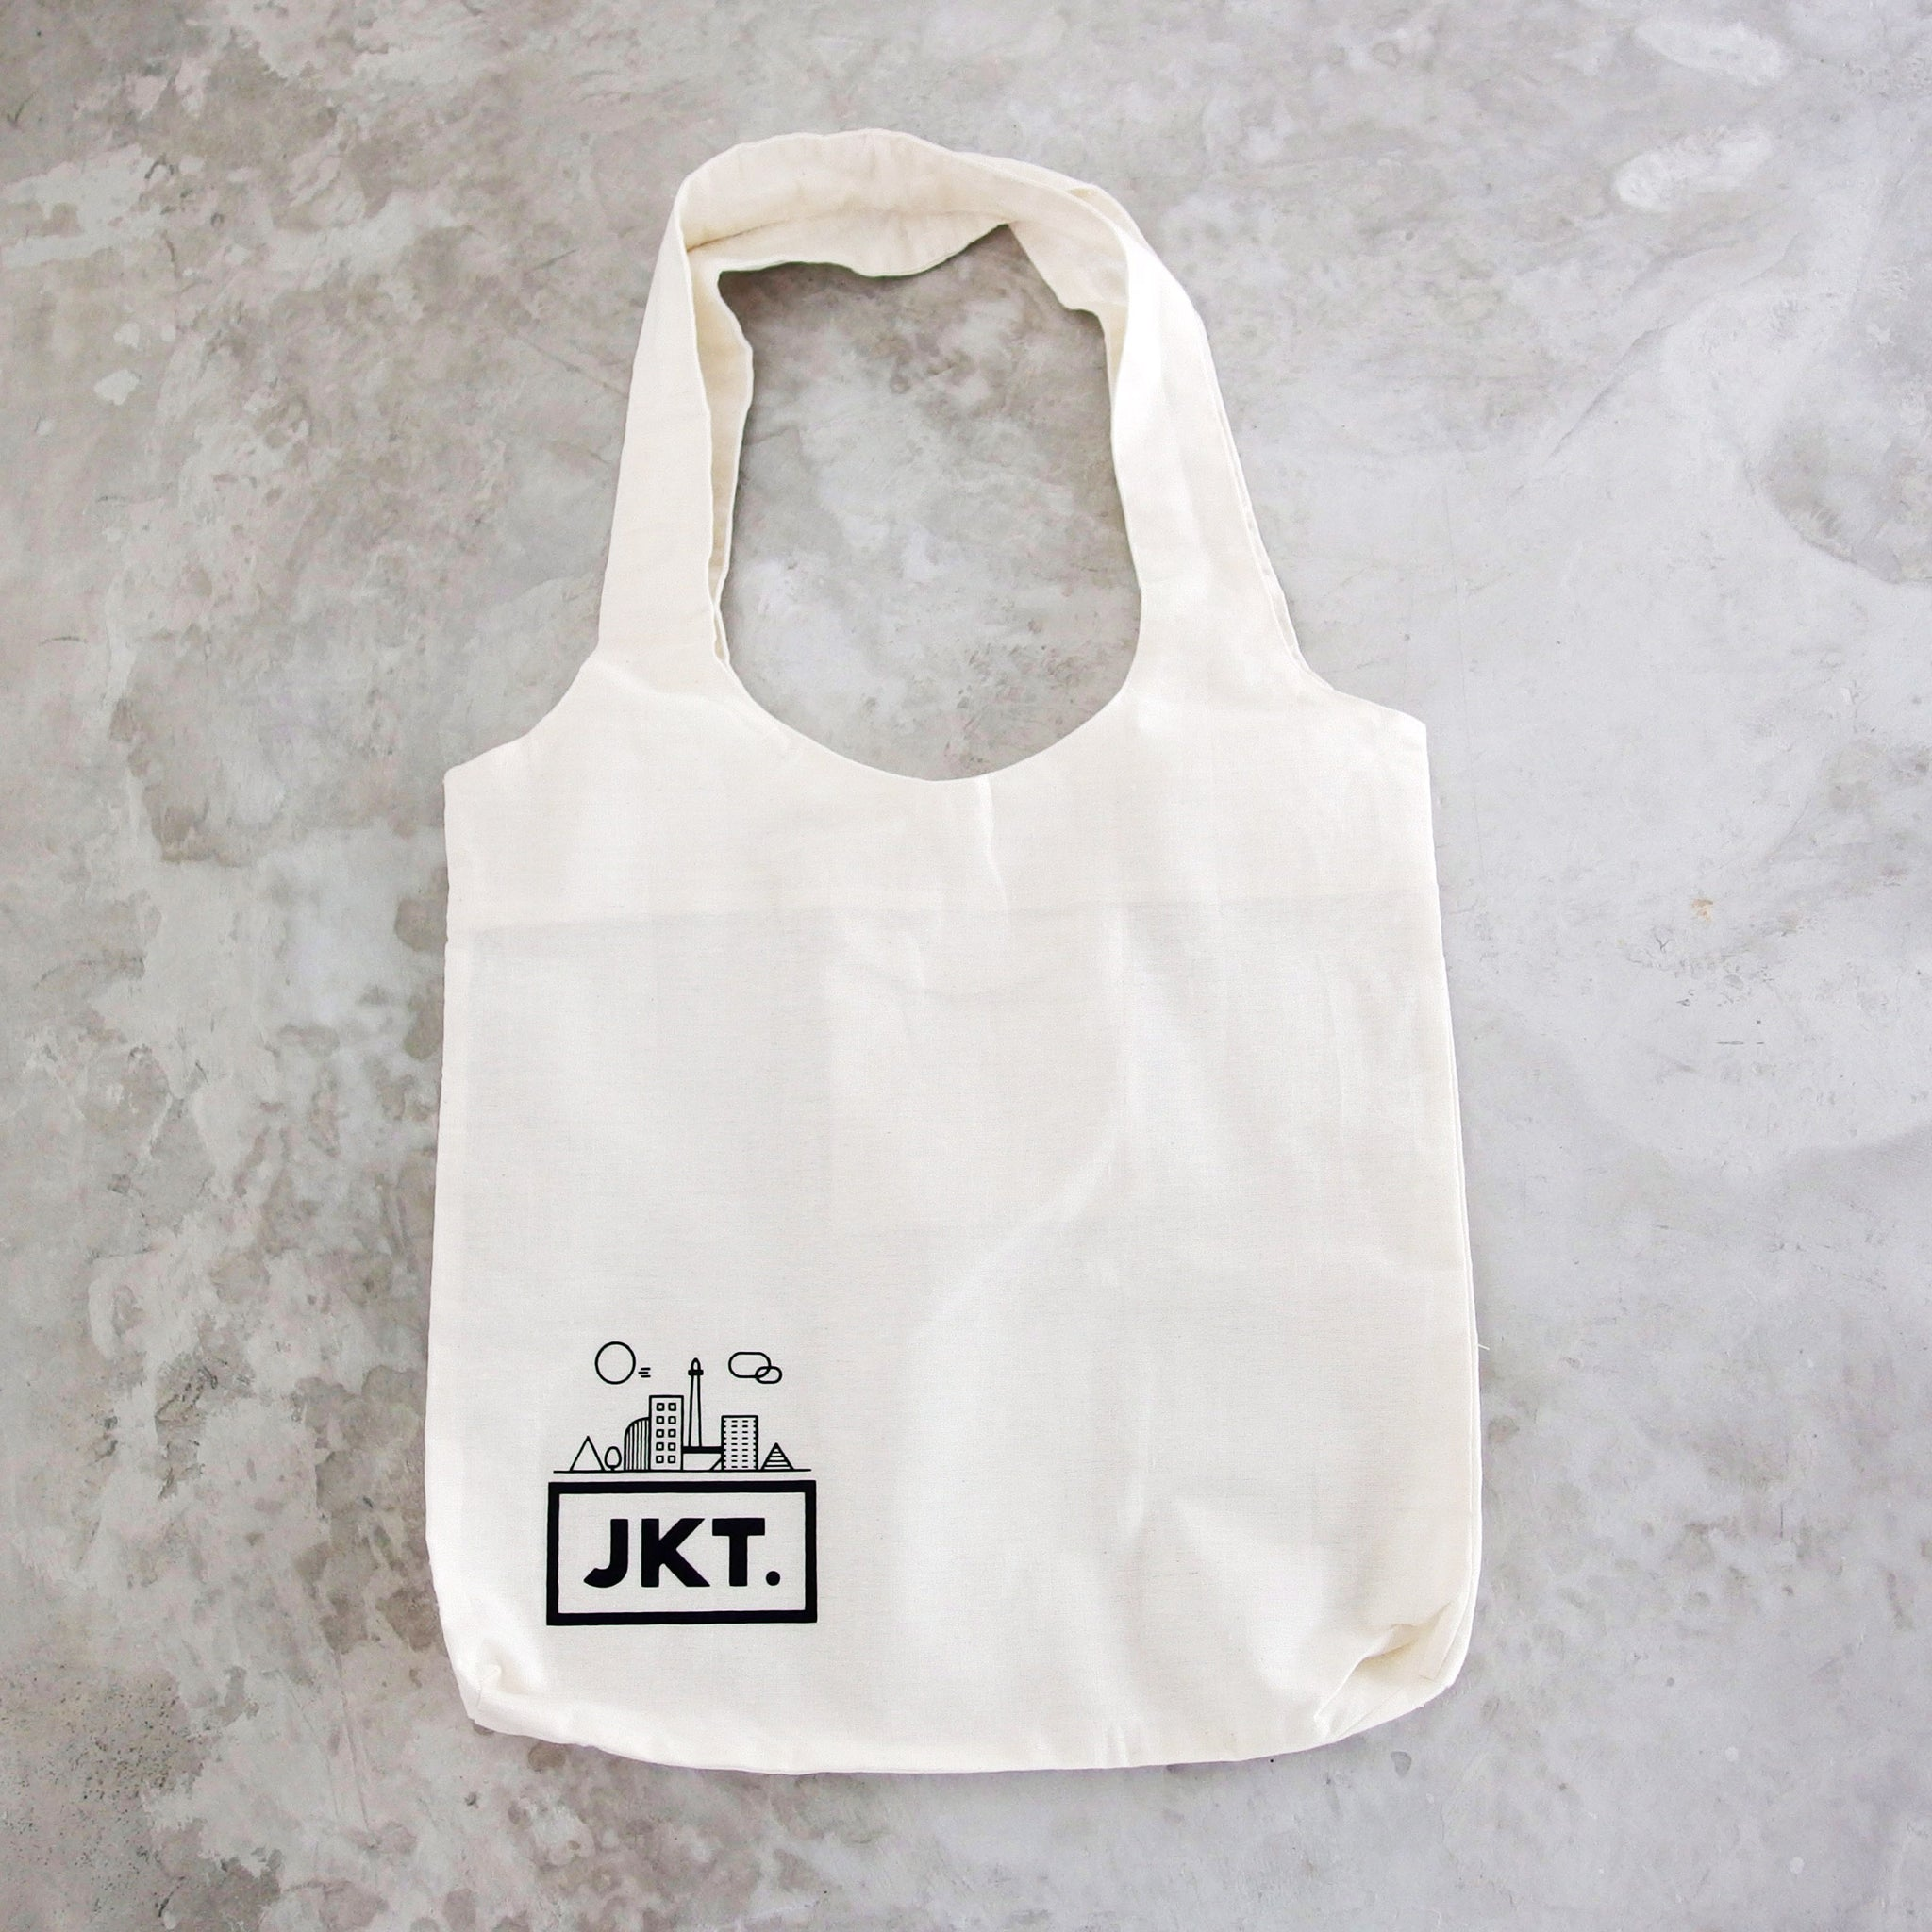 JKT Foldable Shopping Bag